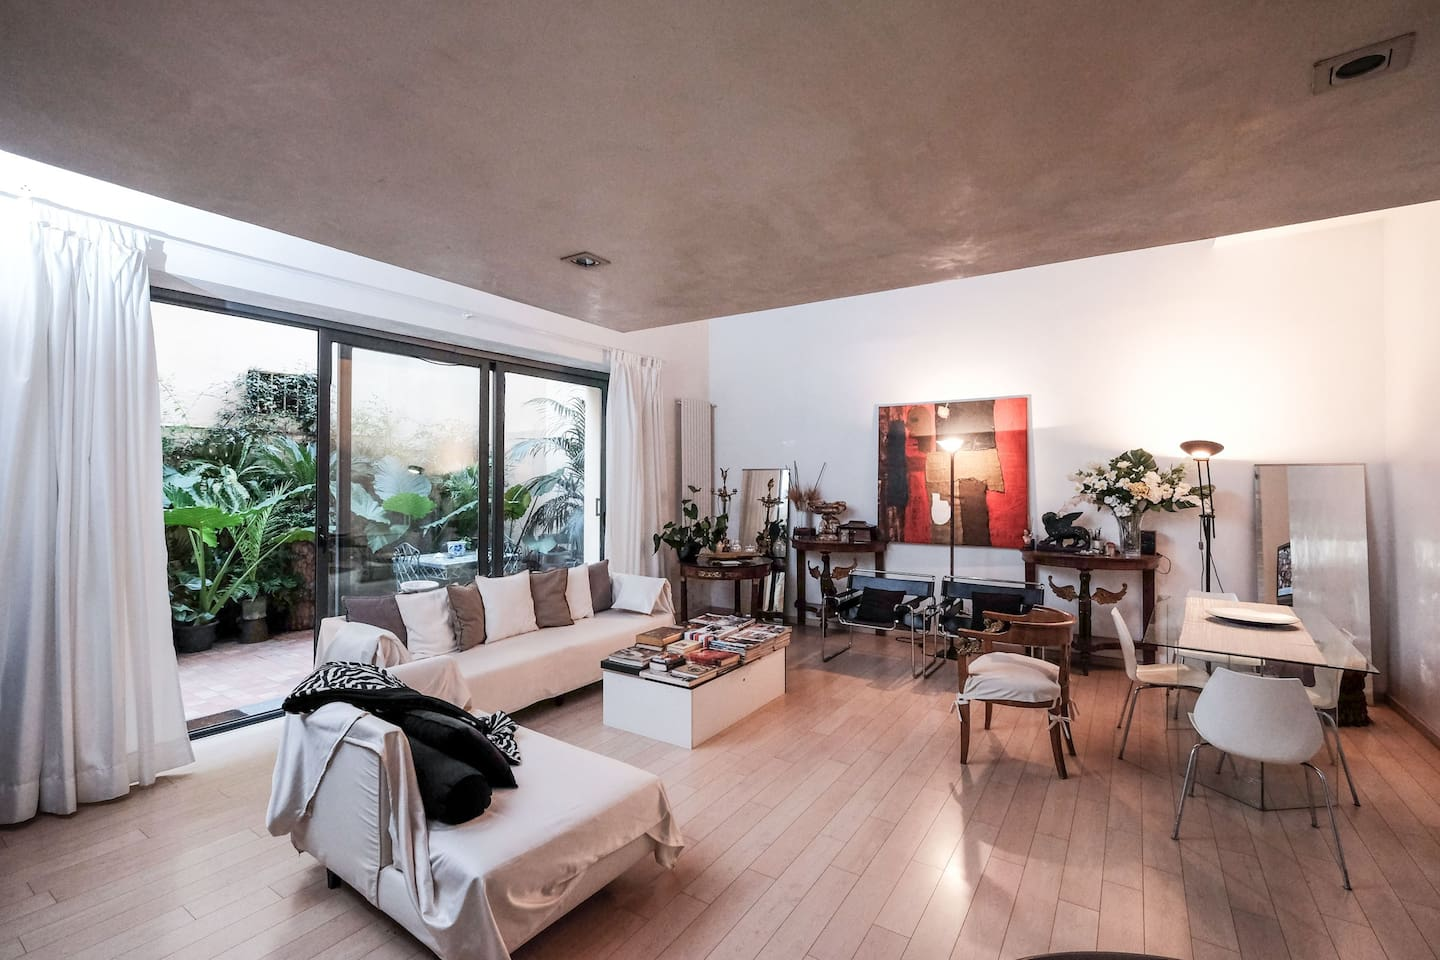 A spacious living room for relaxing and enjoying good company.